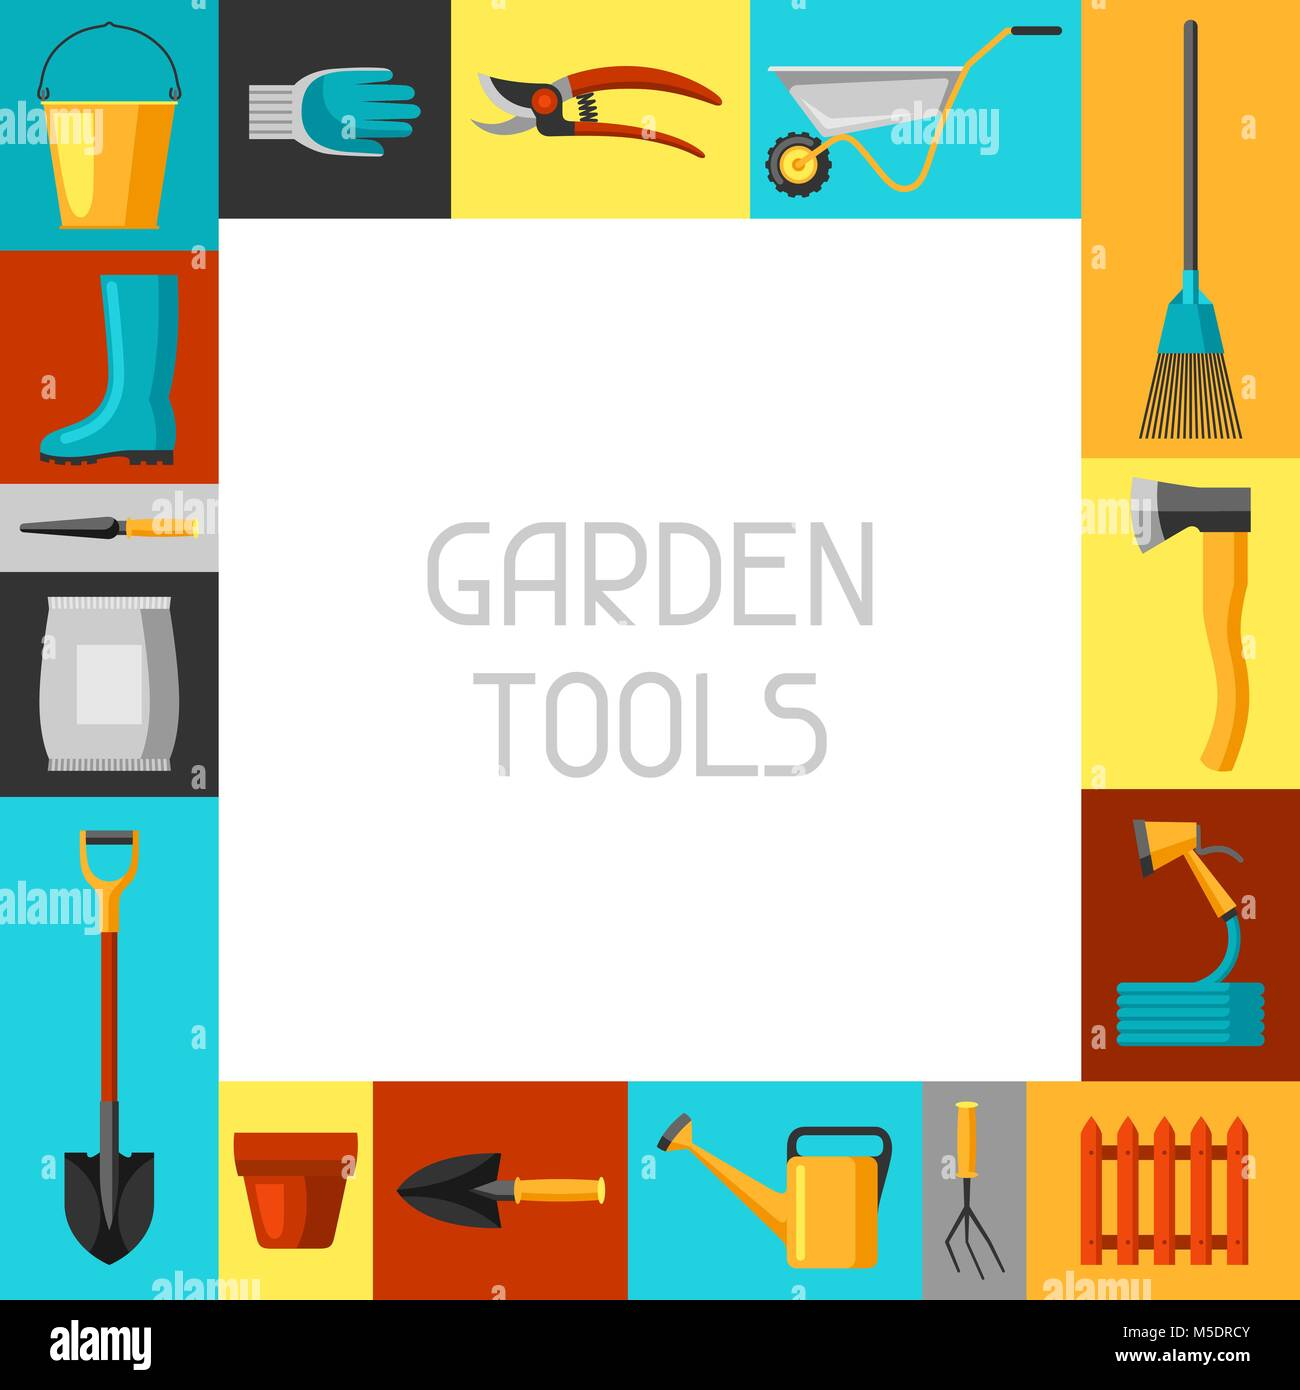 Attrayant Concept Background With Garden Tools And Icons. All For Gardening Business  Illustration